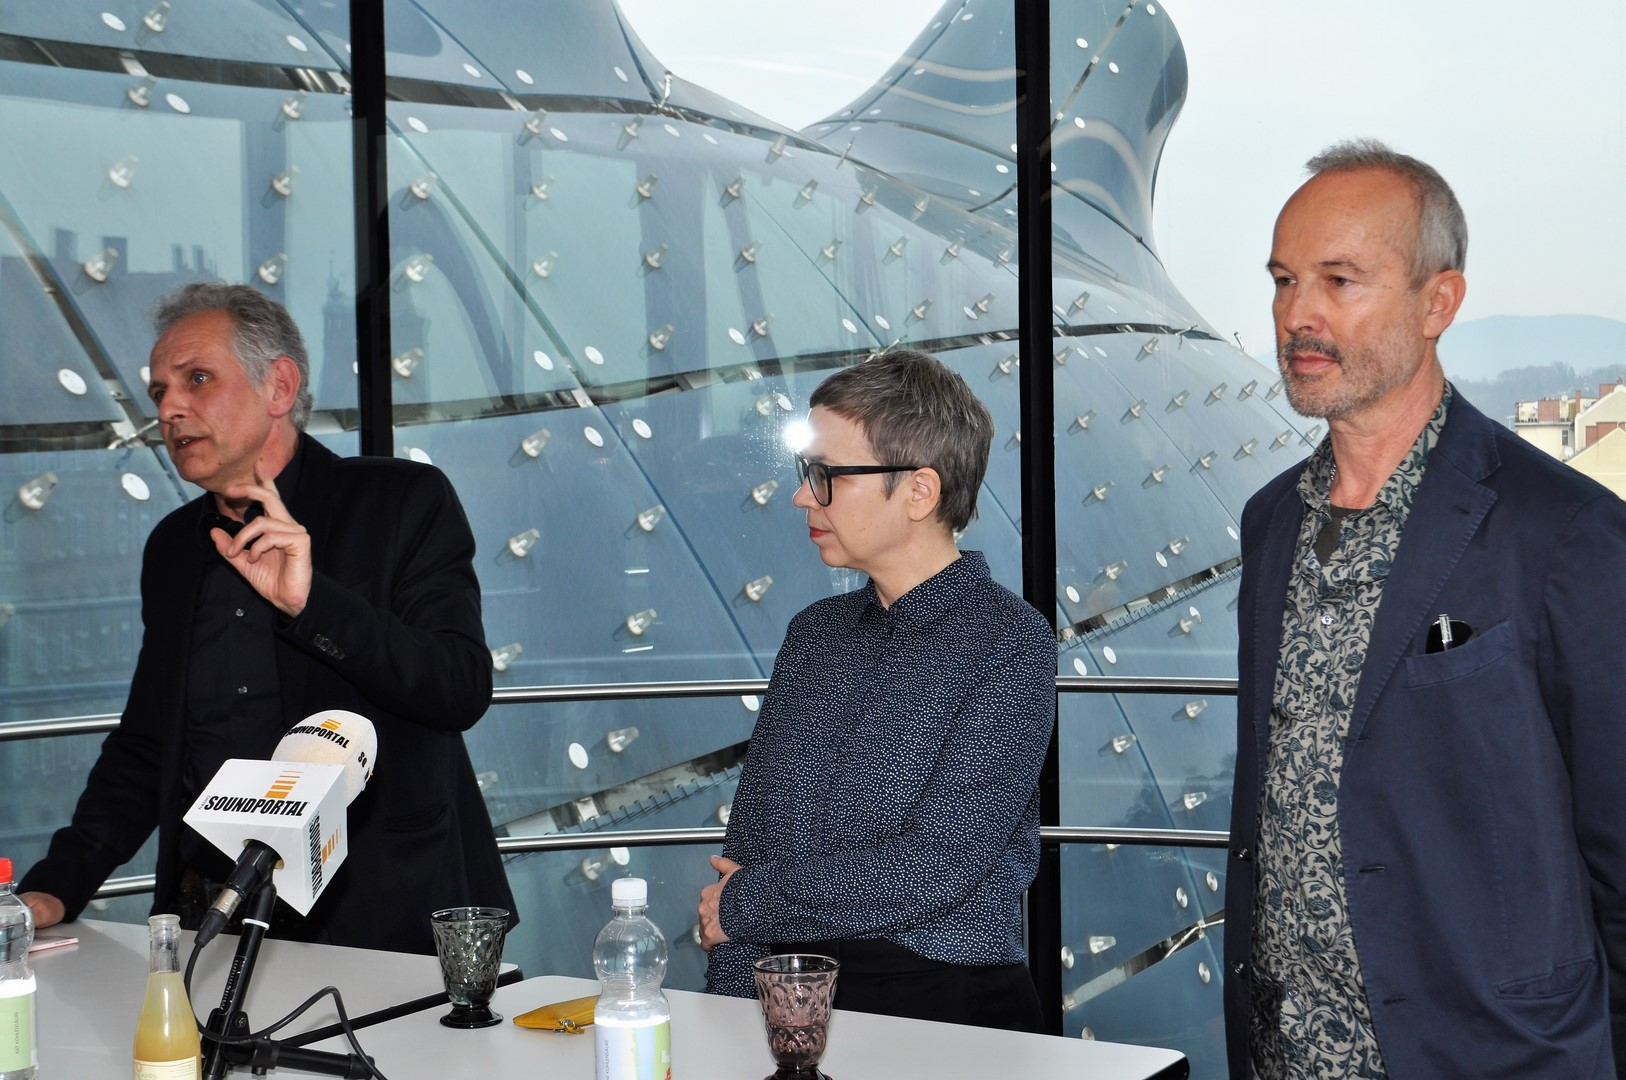 hedi grager journalistin bloggerin erwin wurm im kunsthaus graz. Black Bedroom Furniture Sets. Home Design Ideas